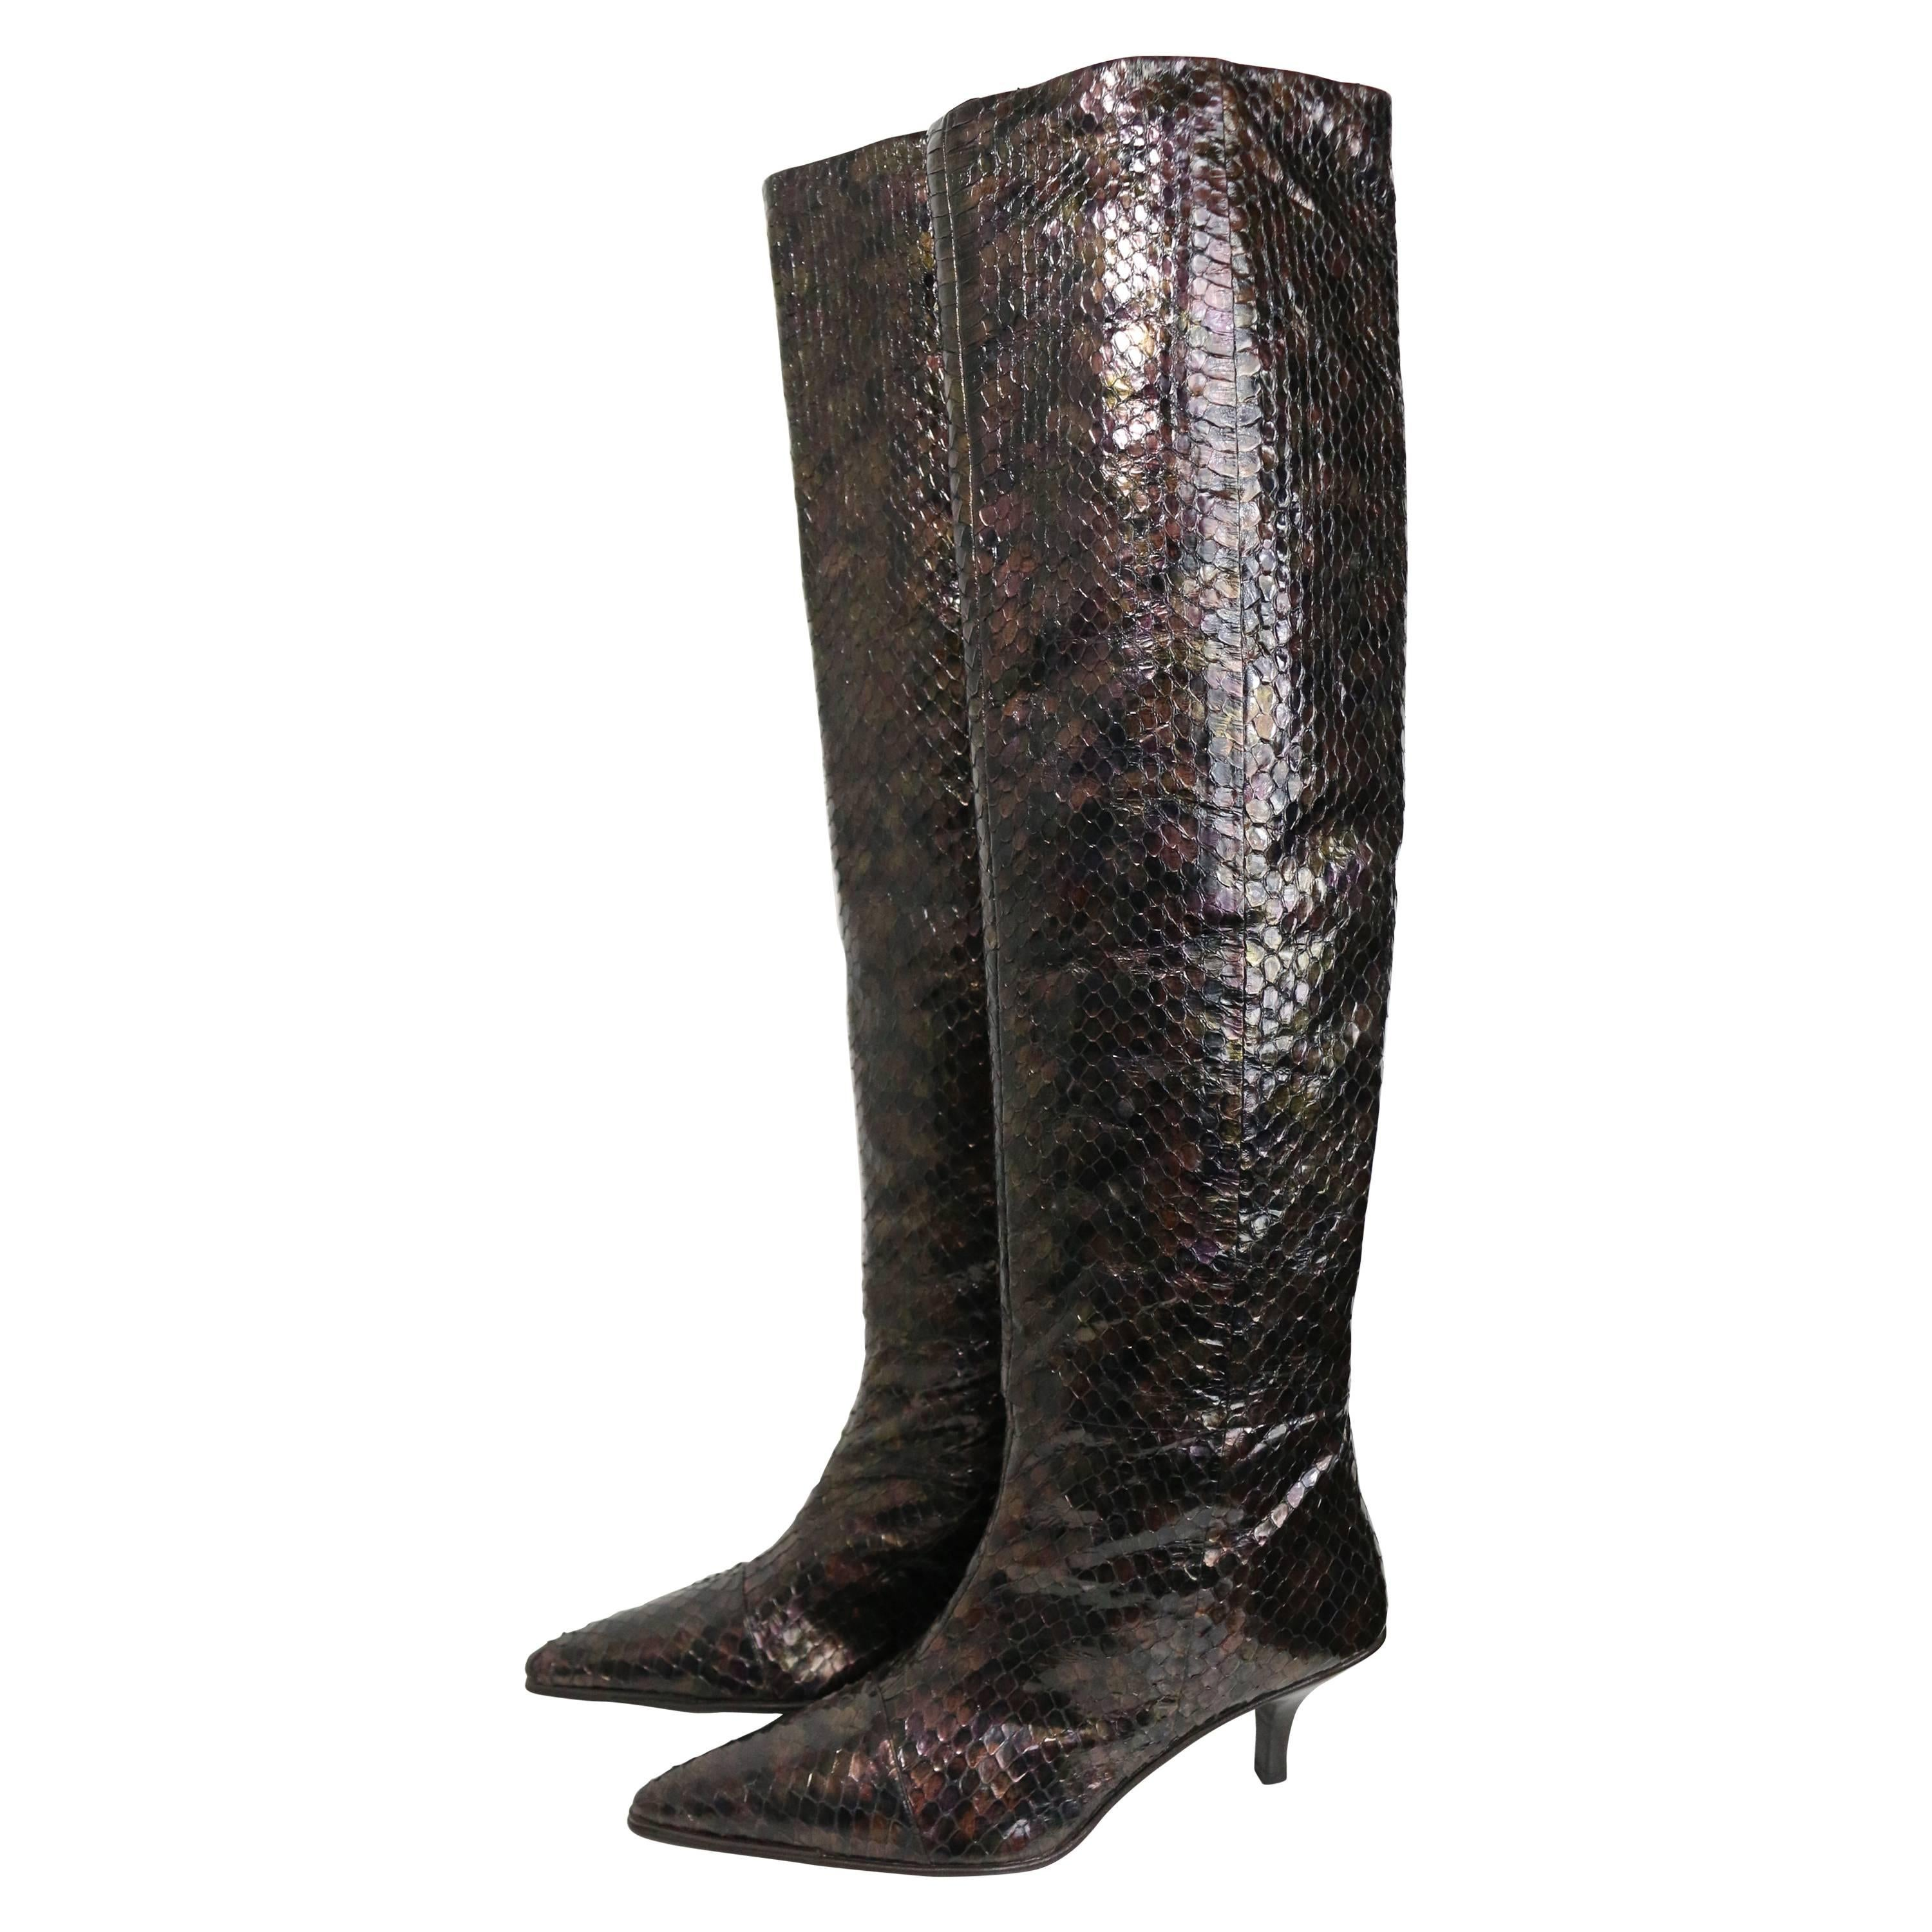 Vintage Gucci by Tom Ford Multi Coloured Python Snakeskin Slip On Long Boots